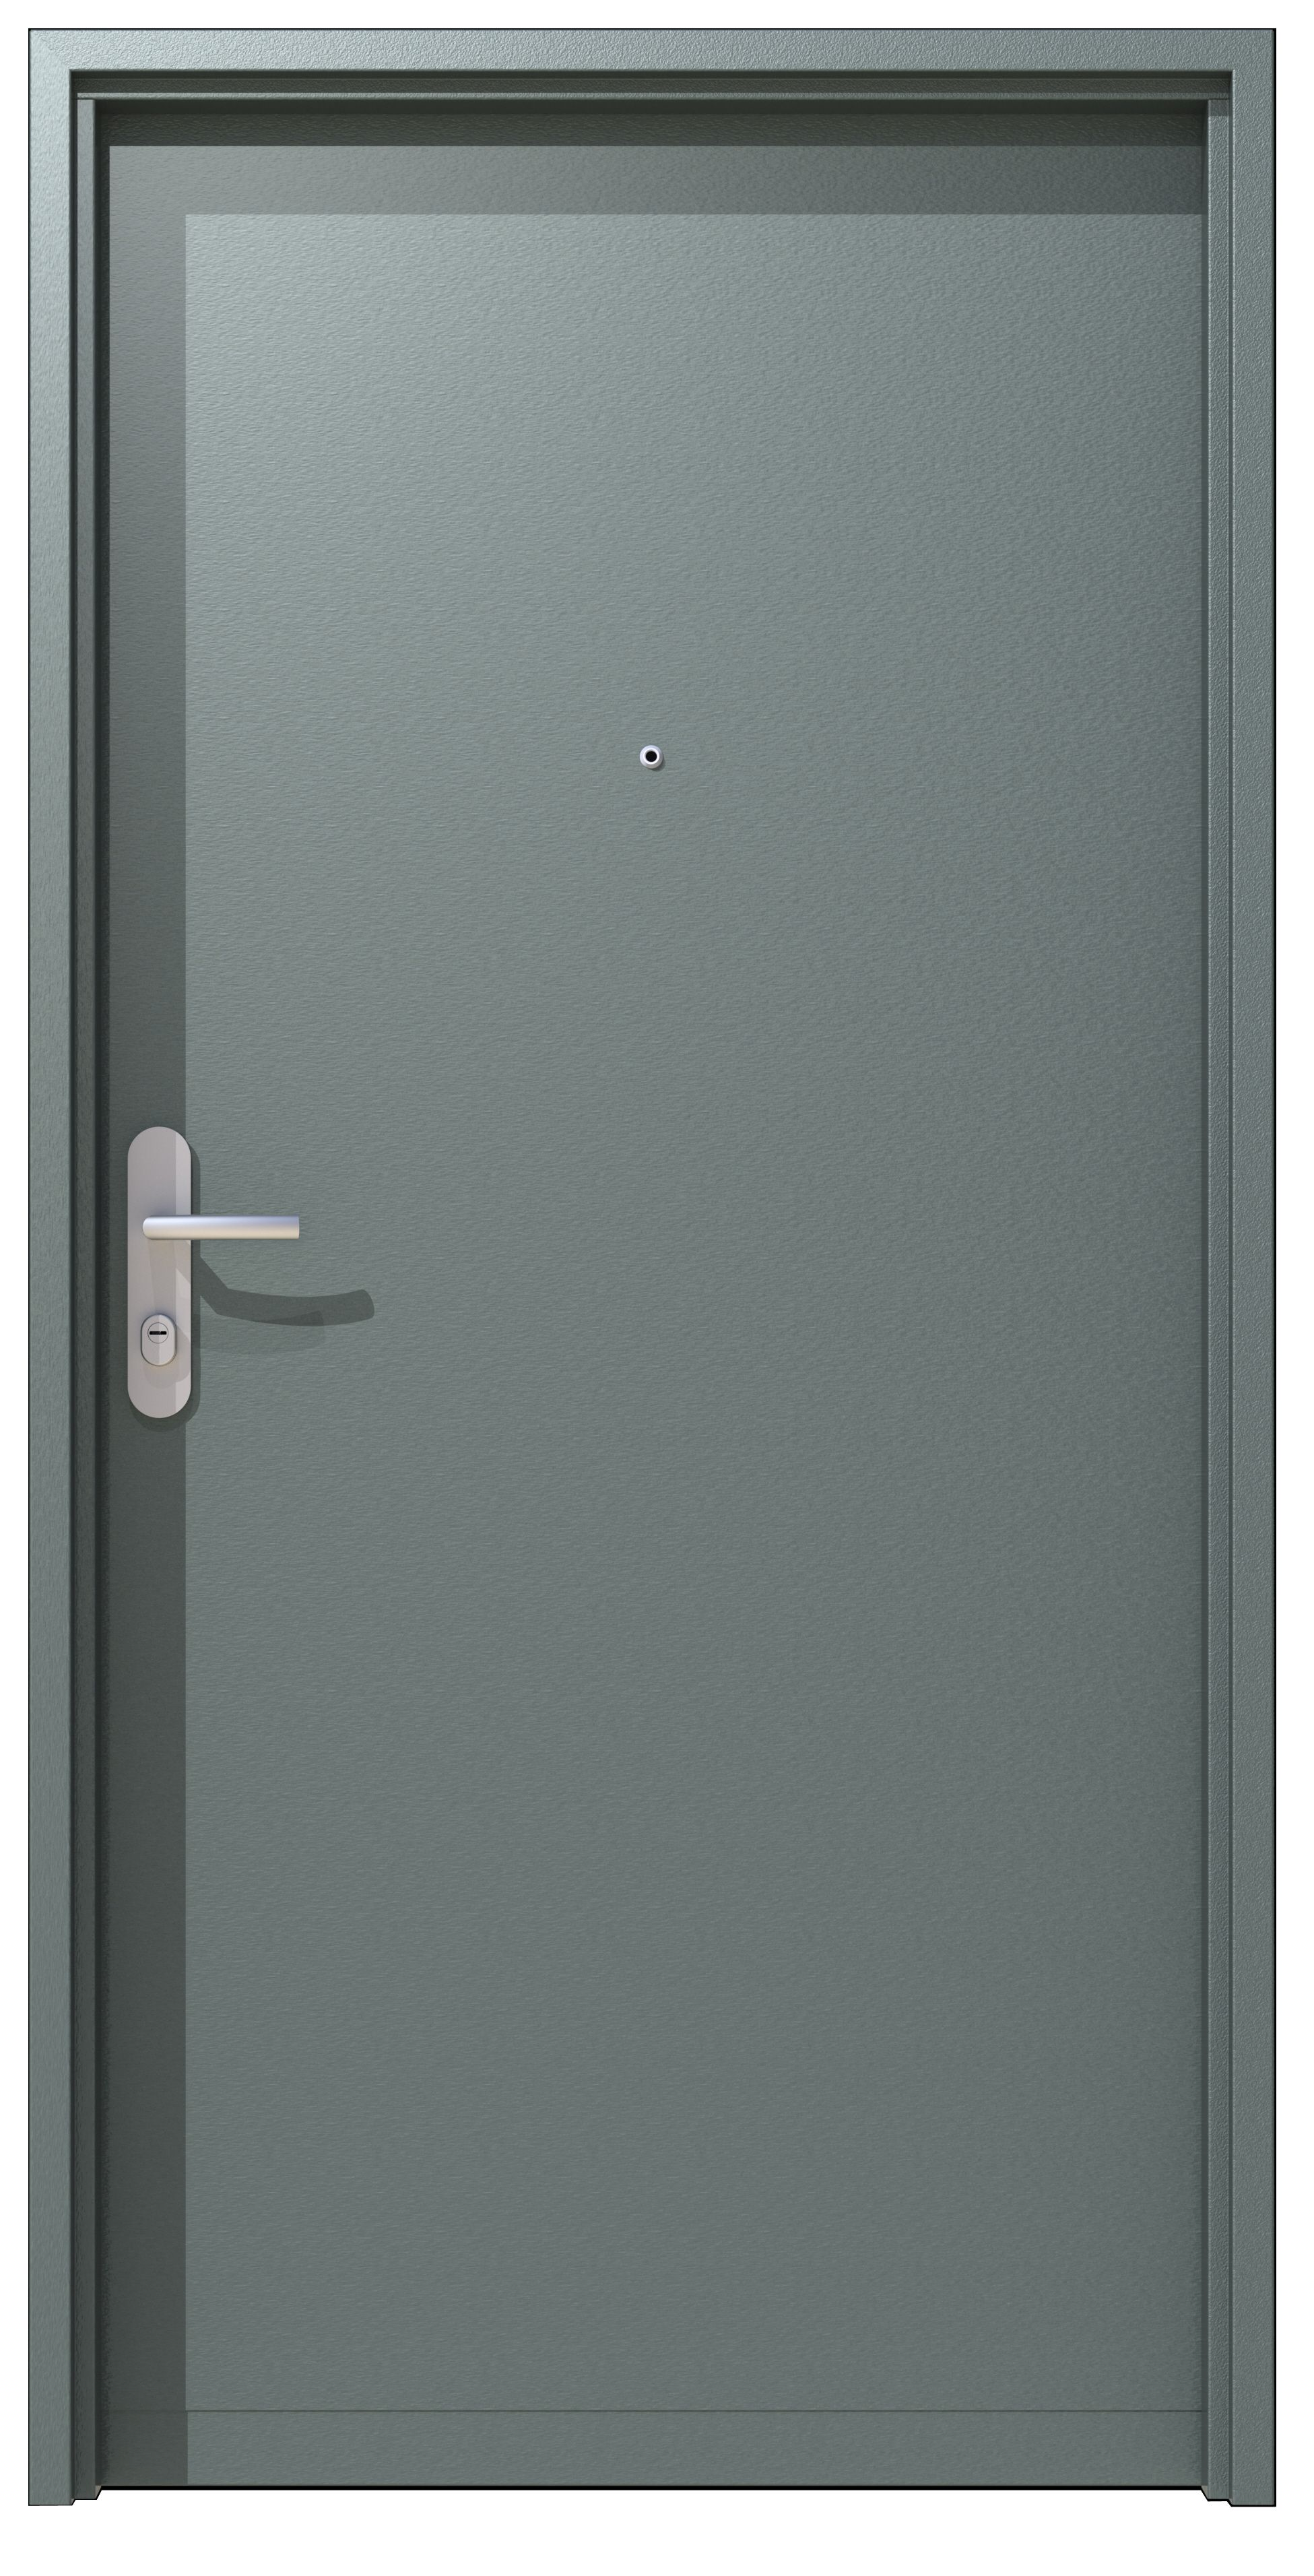 dor security is the basic exterior door by reshafim the